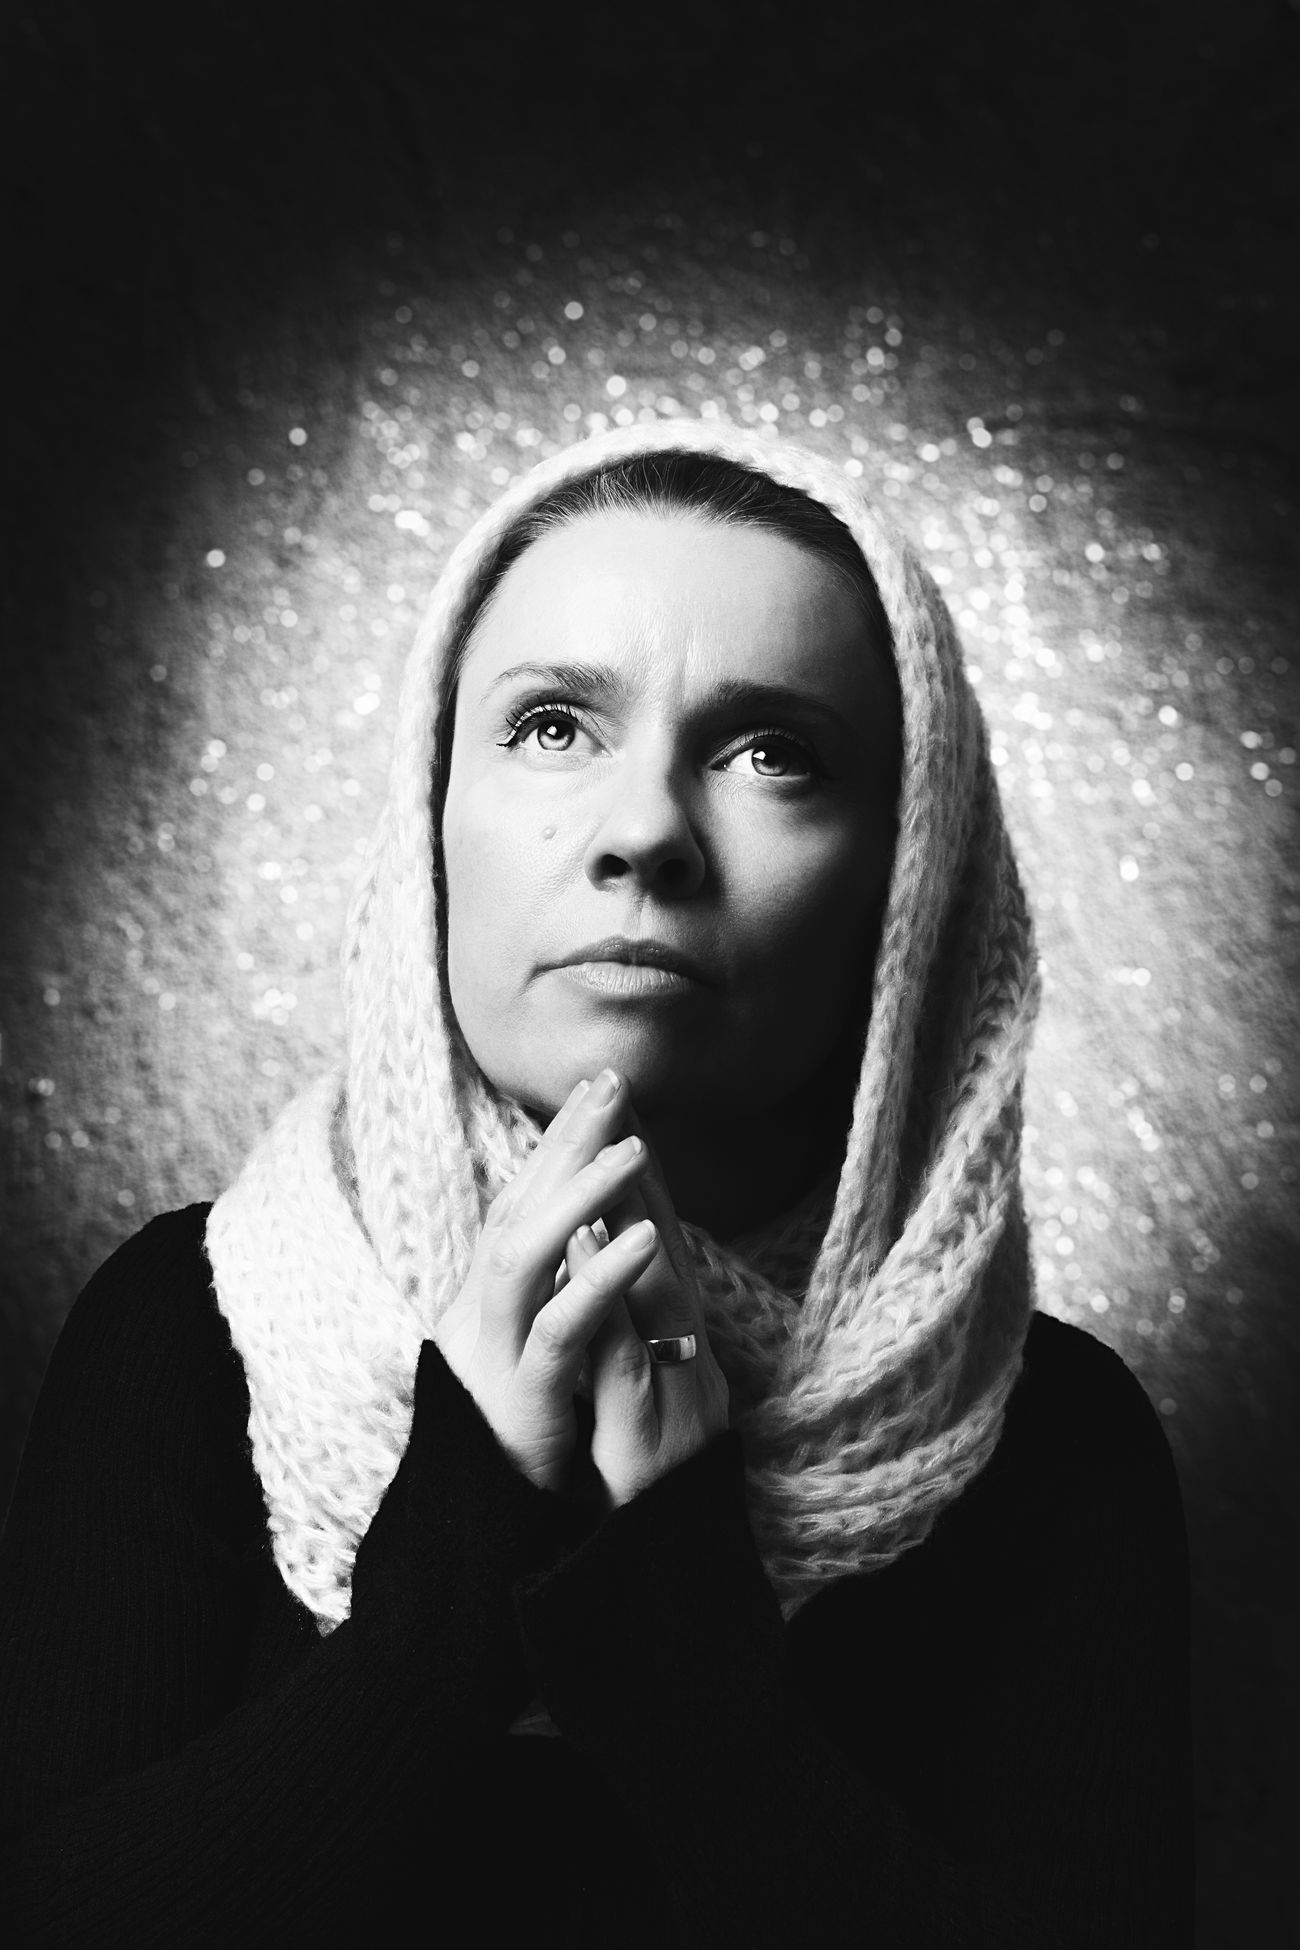 Rembrandt lightning. Portrait of a woman Backgrounds Beautiful Woman Black & White Blackandwhite Close-up Contemplation Eyes Face Fine Art Photography Hands Indoors  Lifestyles One Person Pensive People Photography Portrait Real People Rembrandt Rembrandt Light Studio Studio Shot Thinking